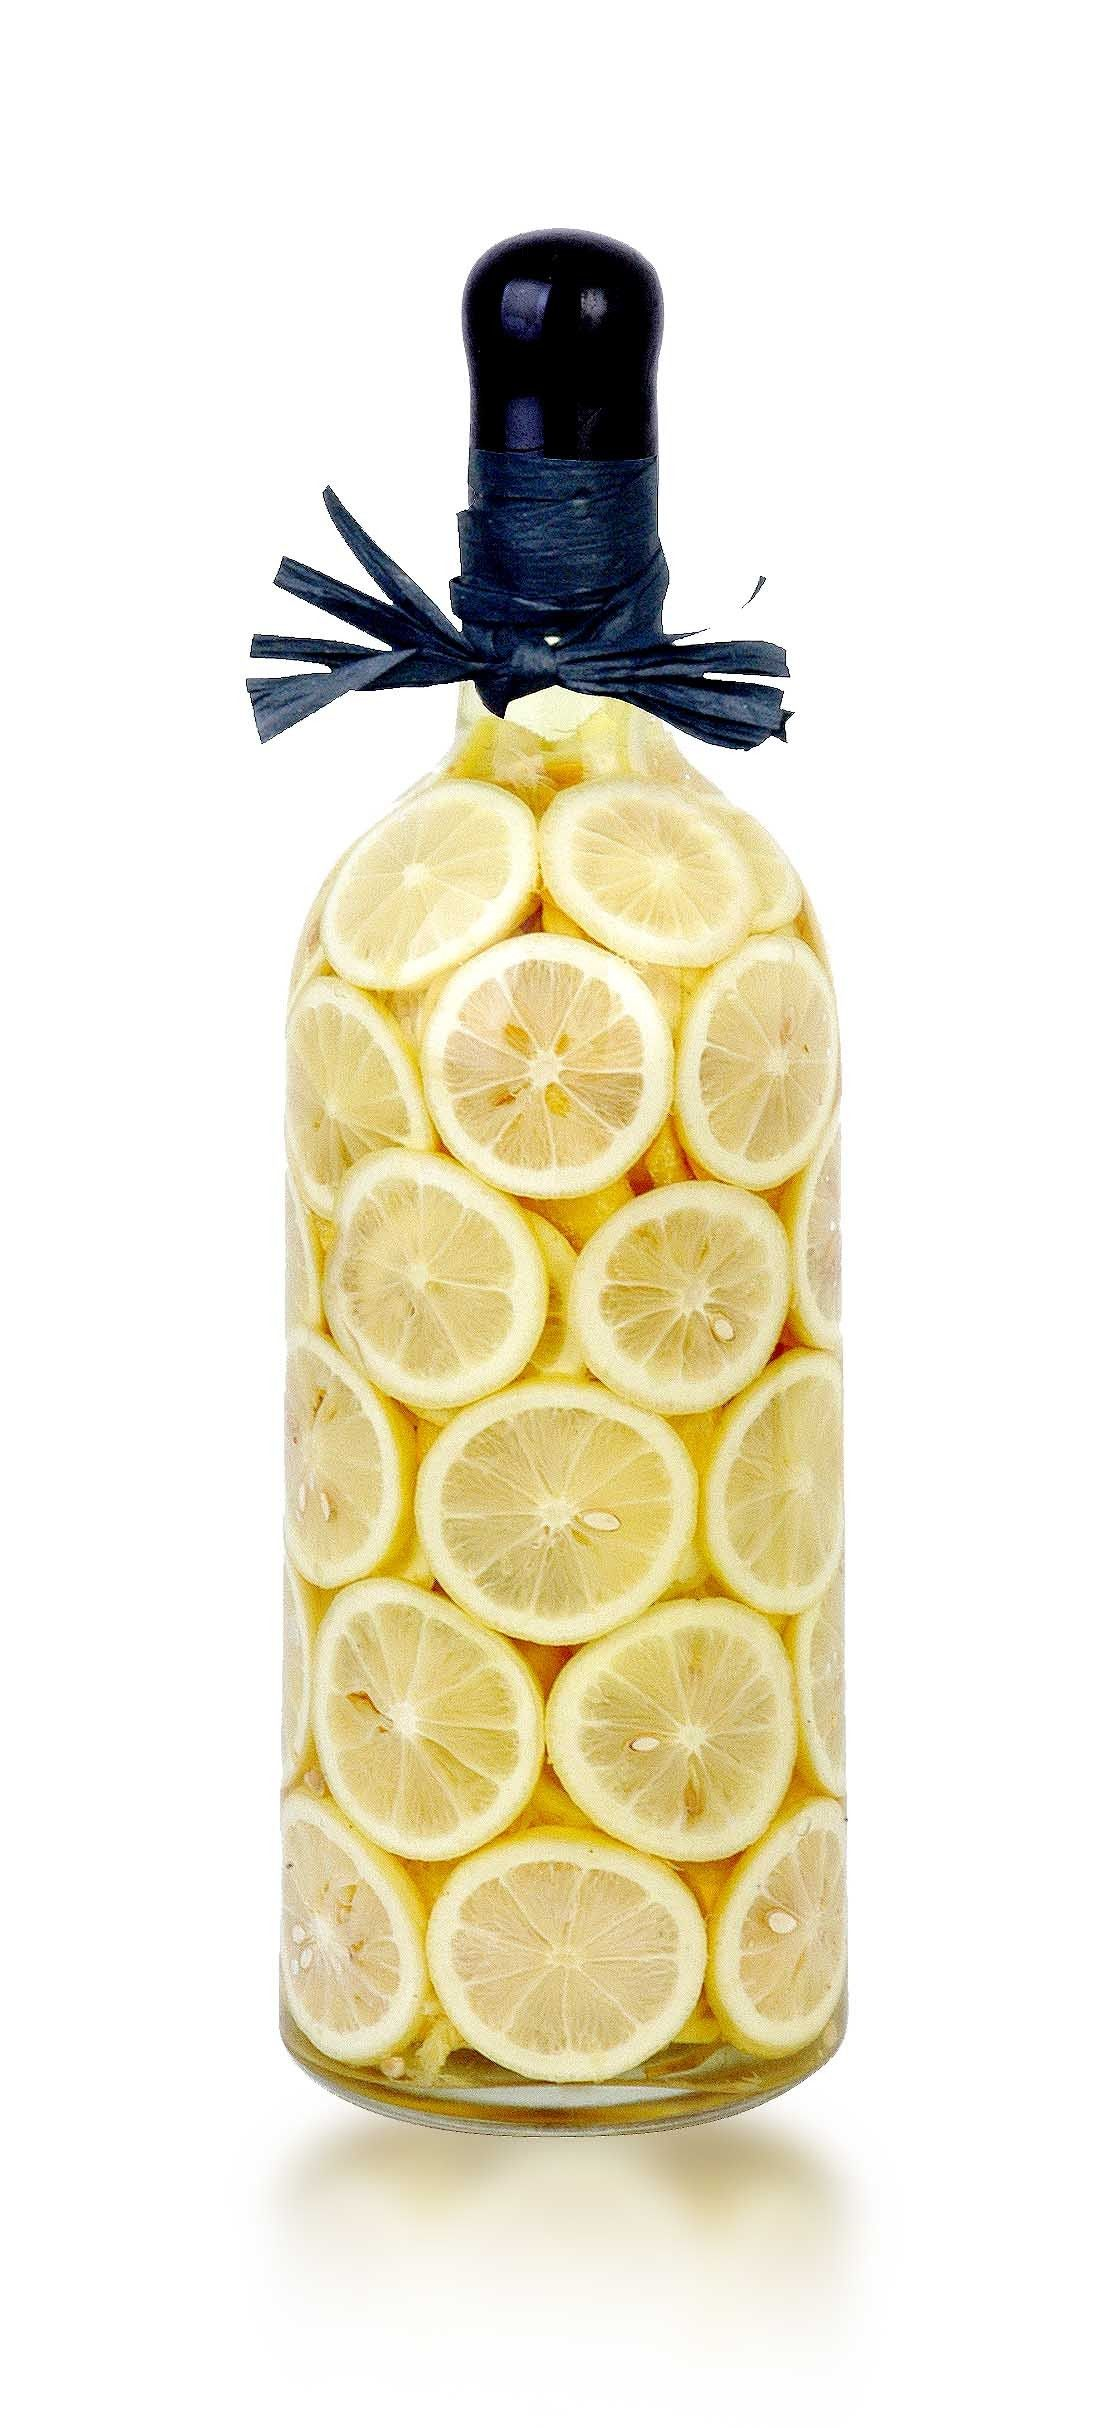 LIMONE Decorated Vinegar Bottle Infusions Pinterest